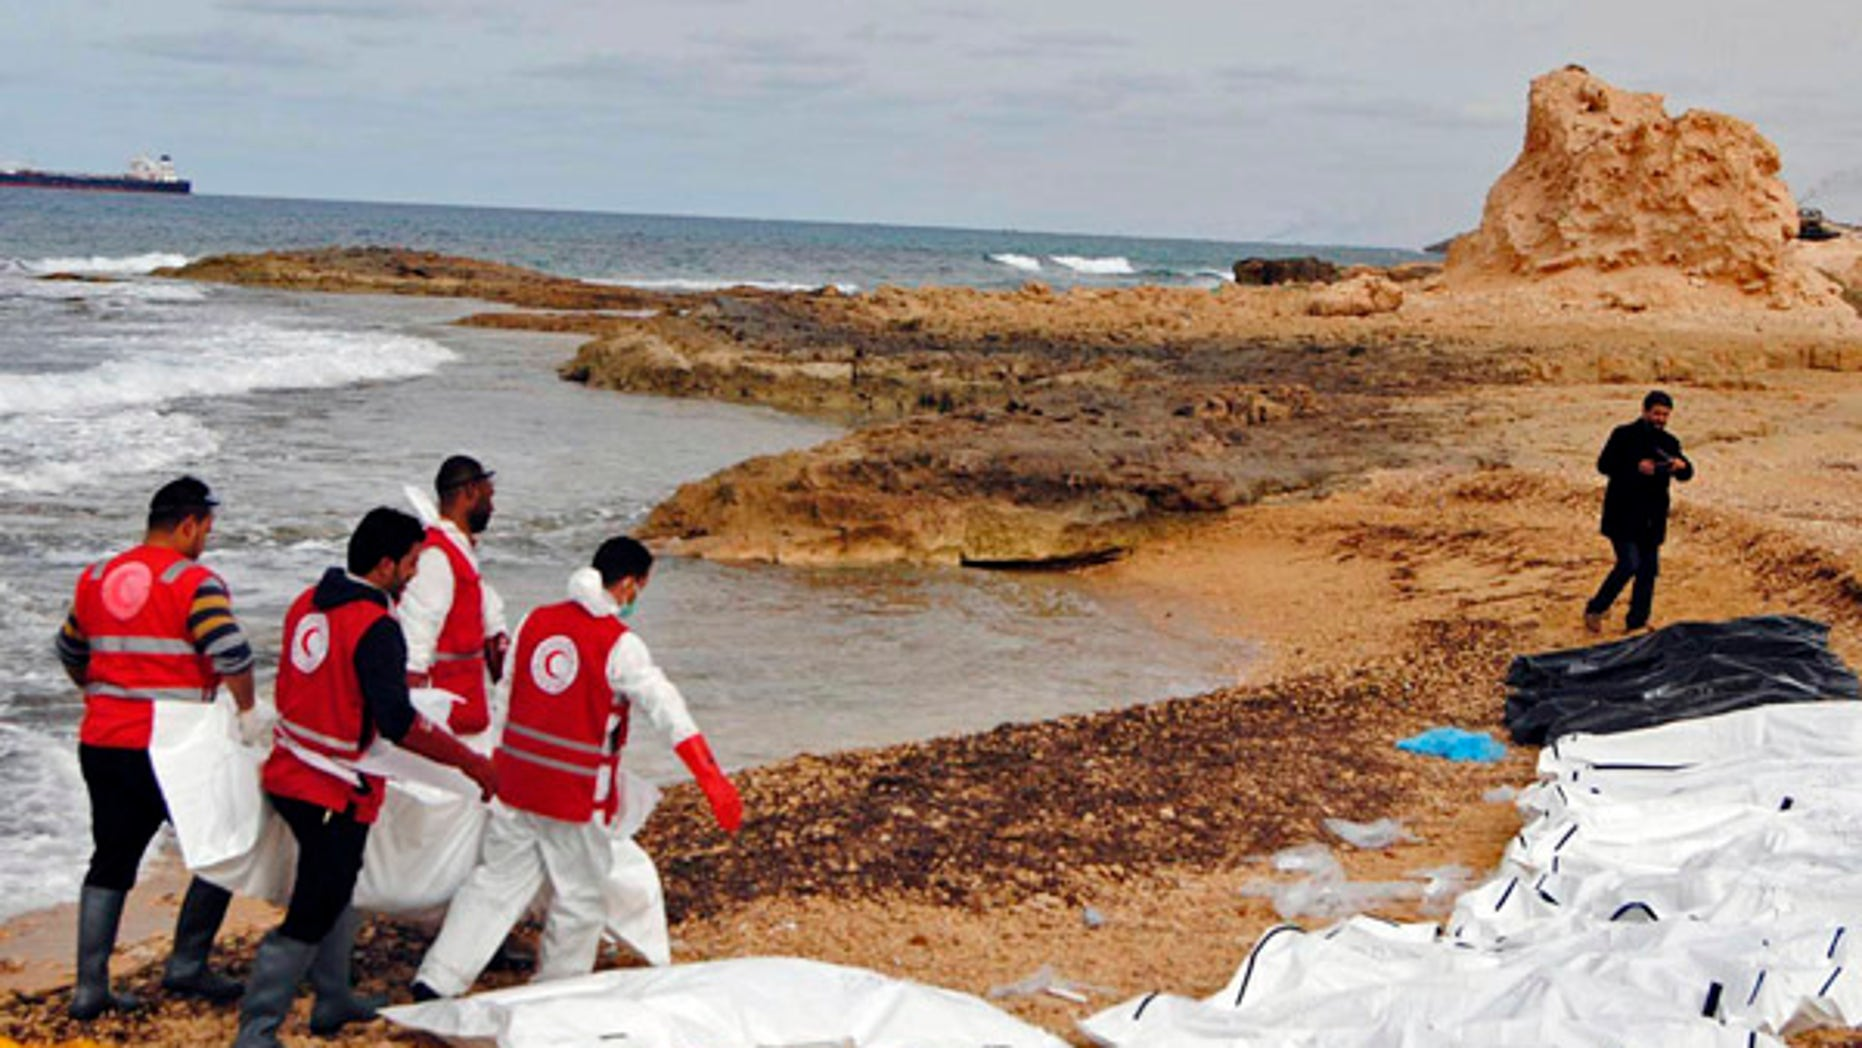 The bodies of people that washed ashore and were recovered by the Libyan Red Crescent, near Zawiya, Libya.